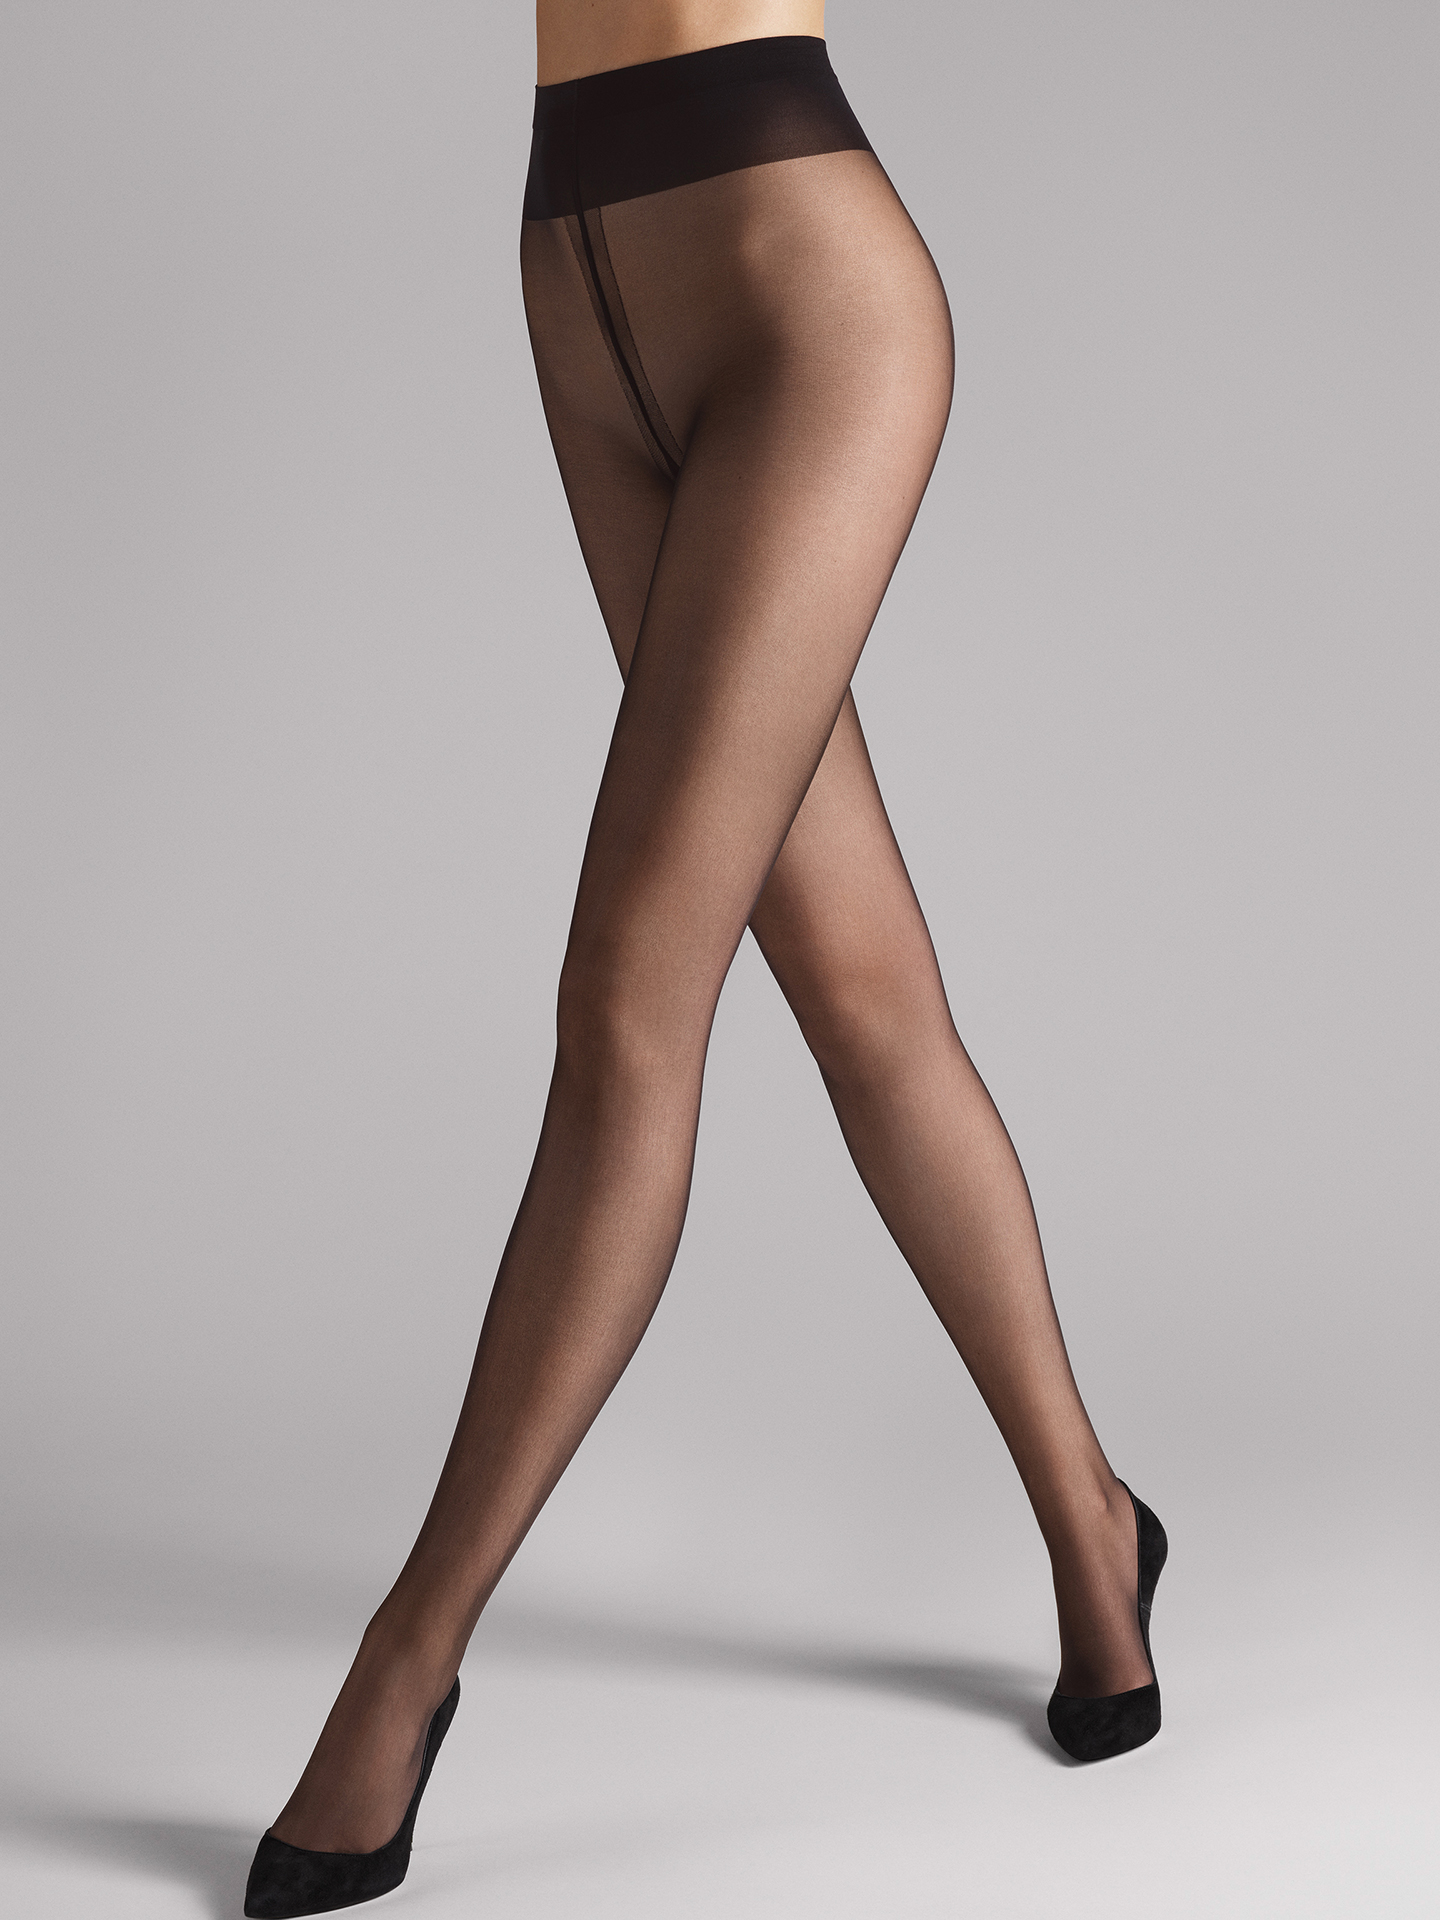 Wolford Apparel & Accessories > Clothing > Collant Individual 10 - 7212 - S